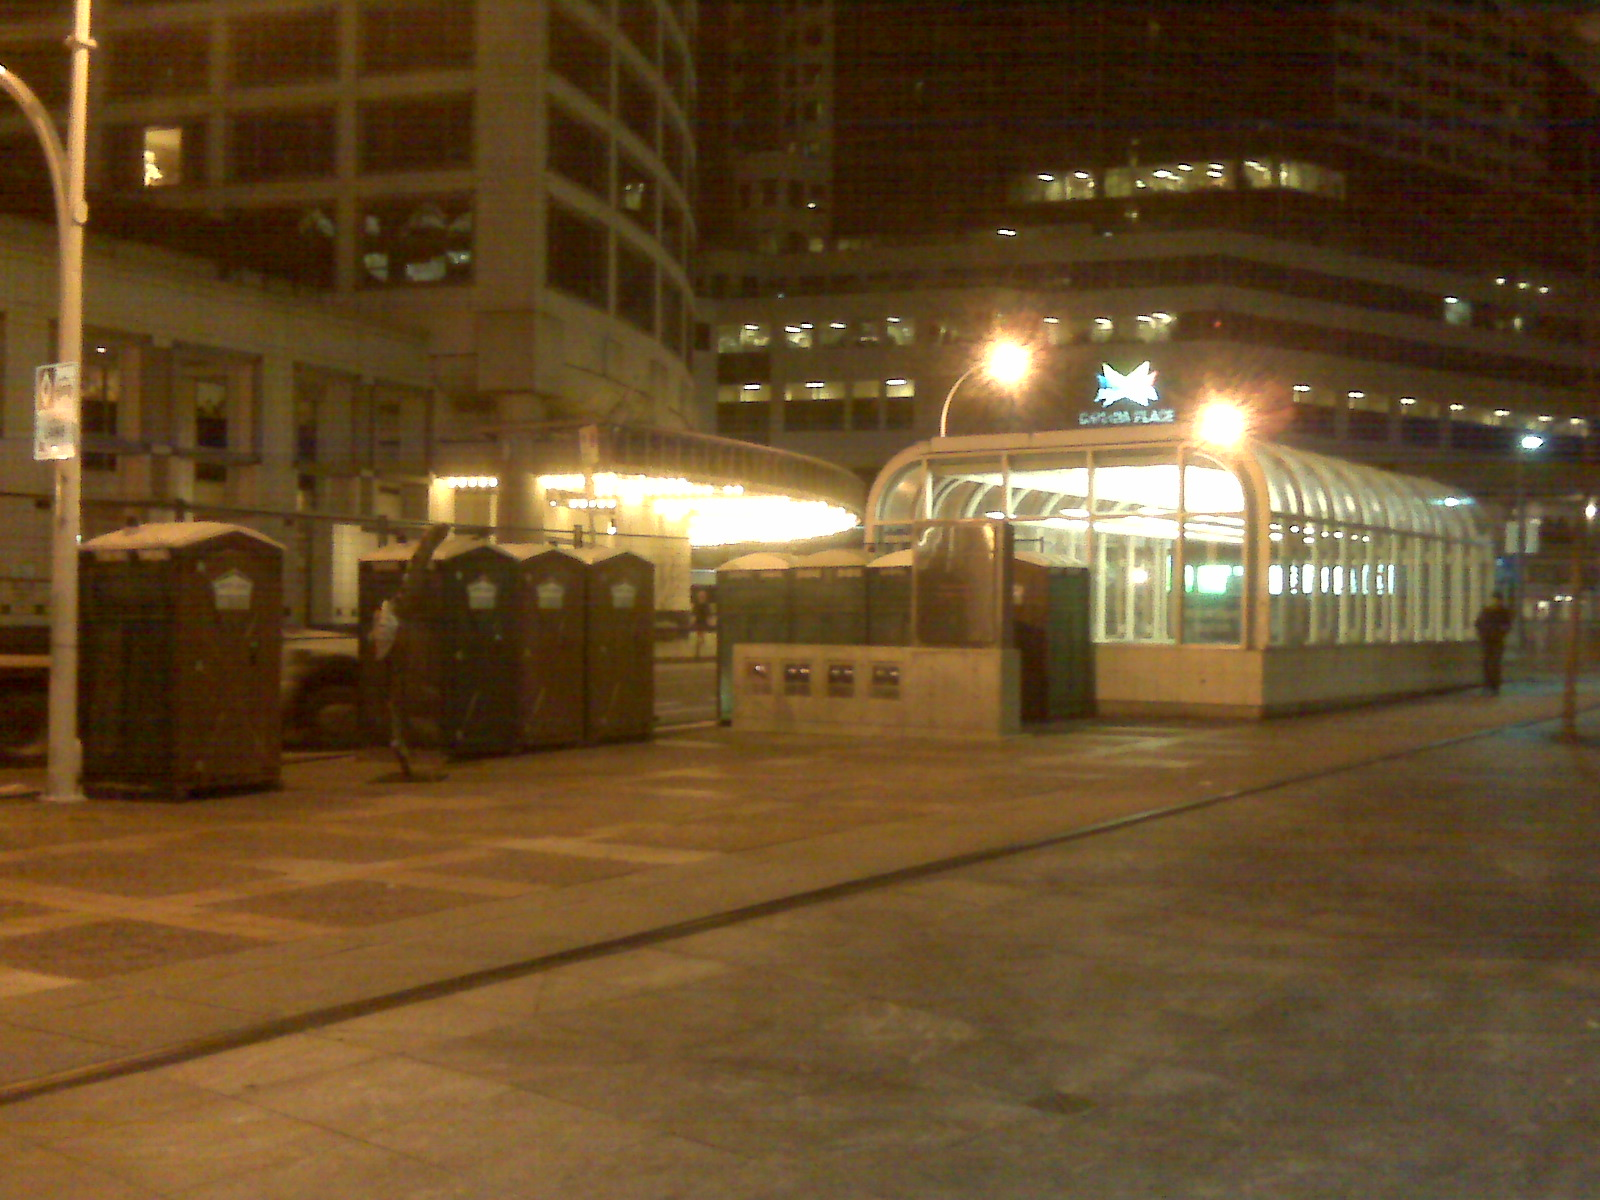 Port-o-potties beside the Howe Street entrance to Waterfront Station.